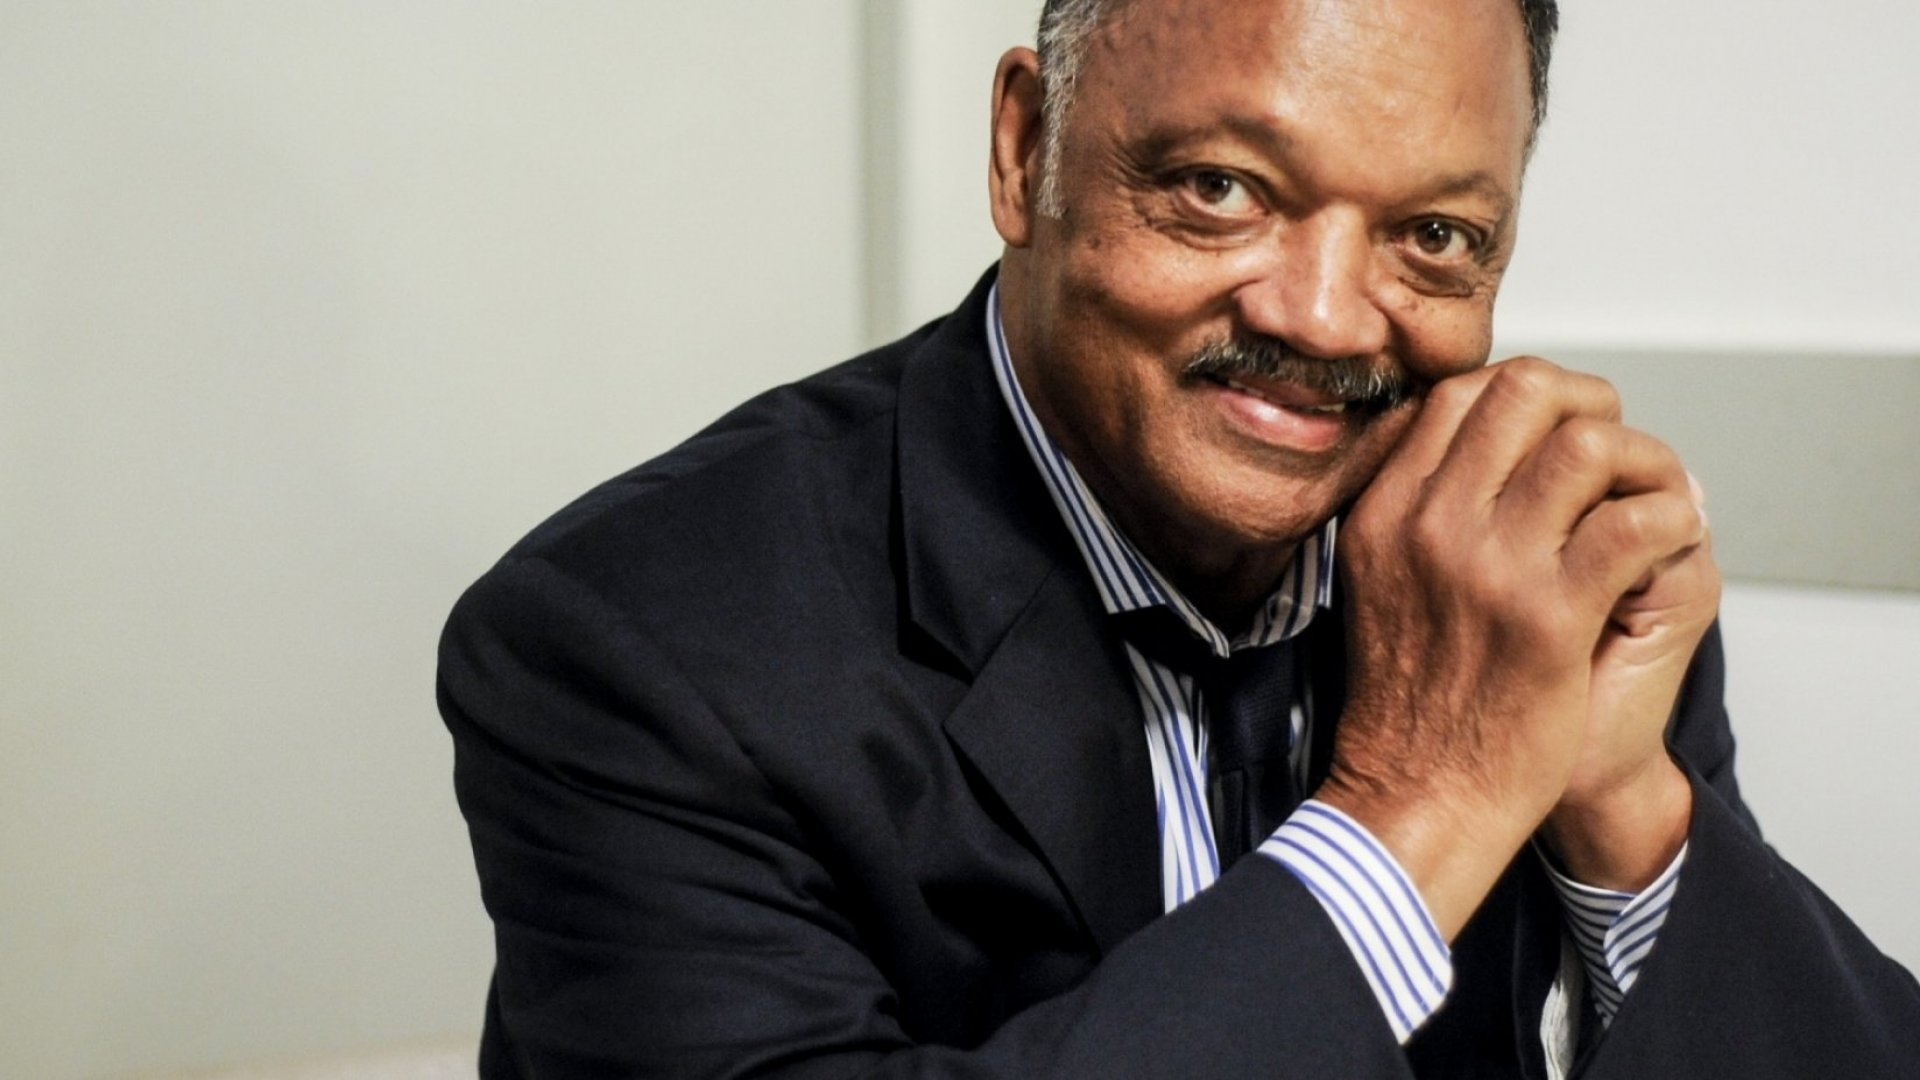 Reverend Jesse Jackson: 'Oakland Can Be the Land of Promise' in Tech